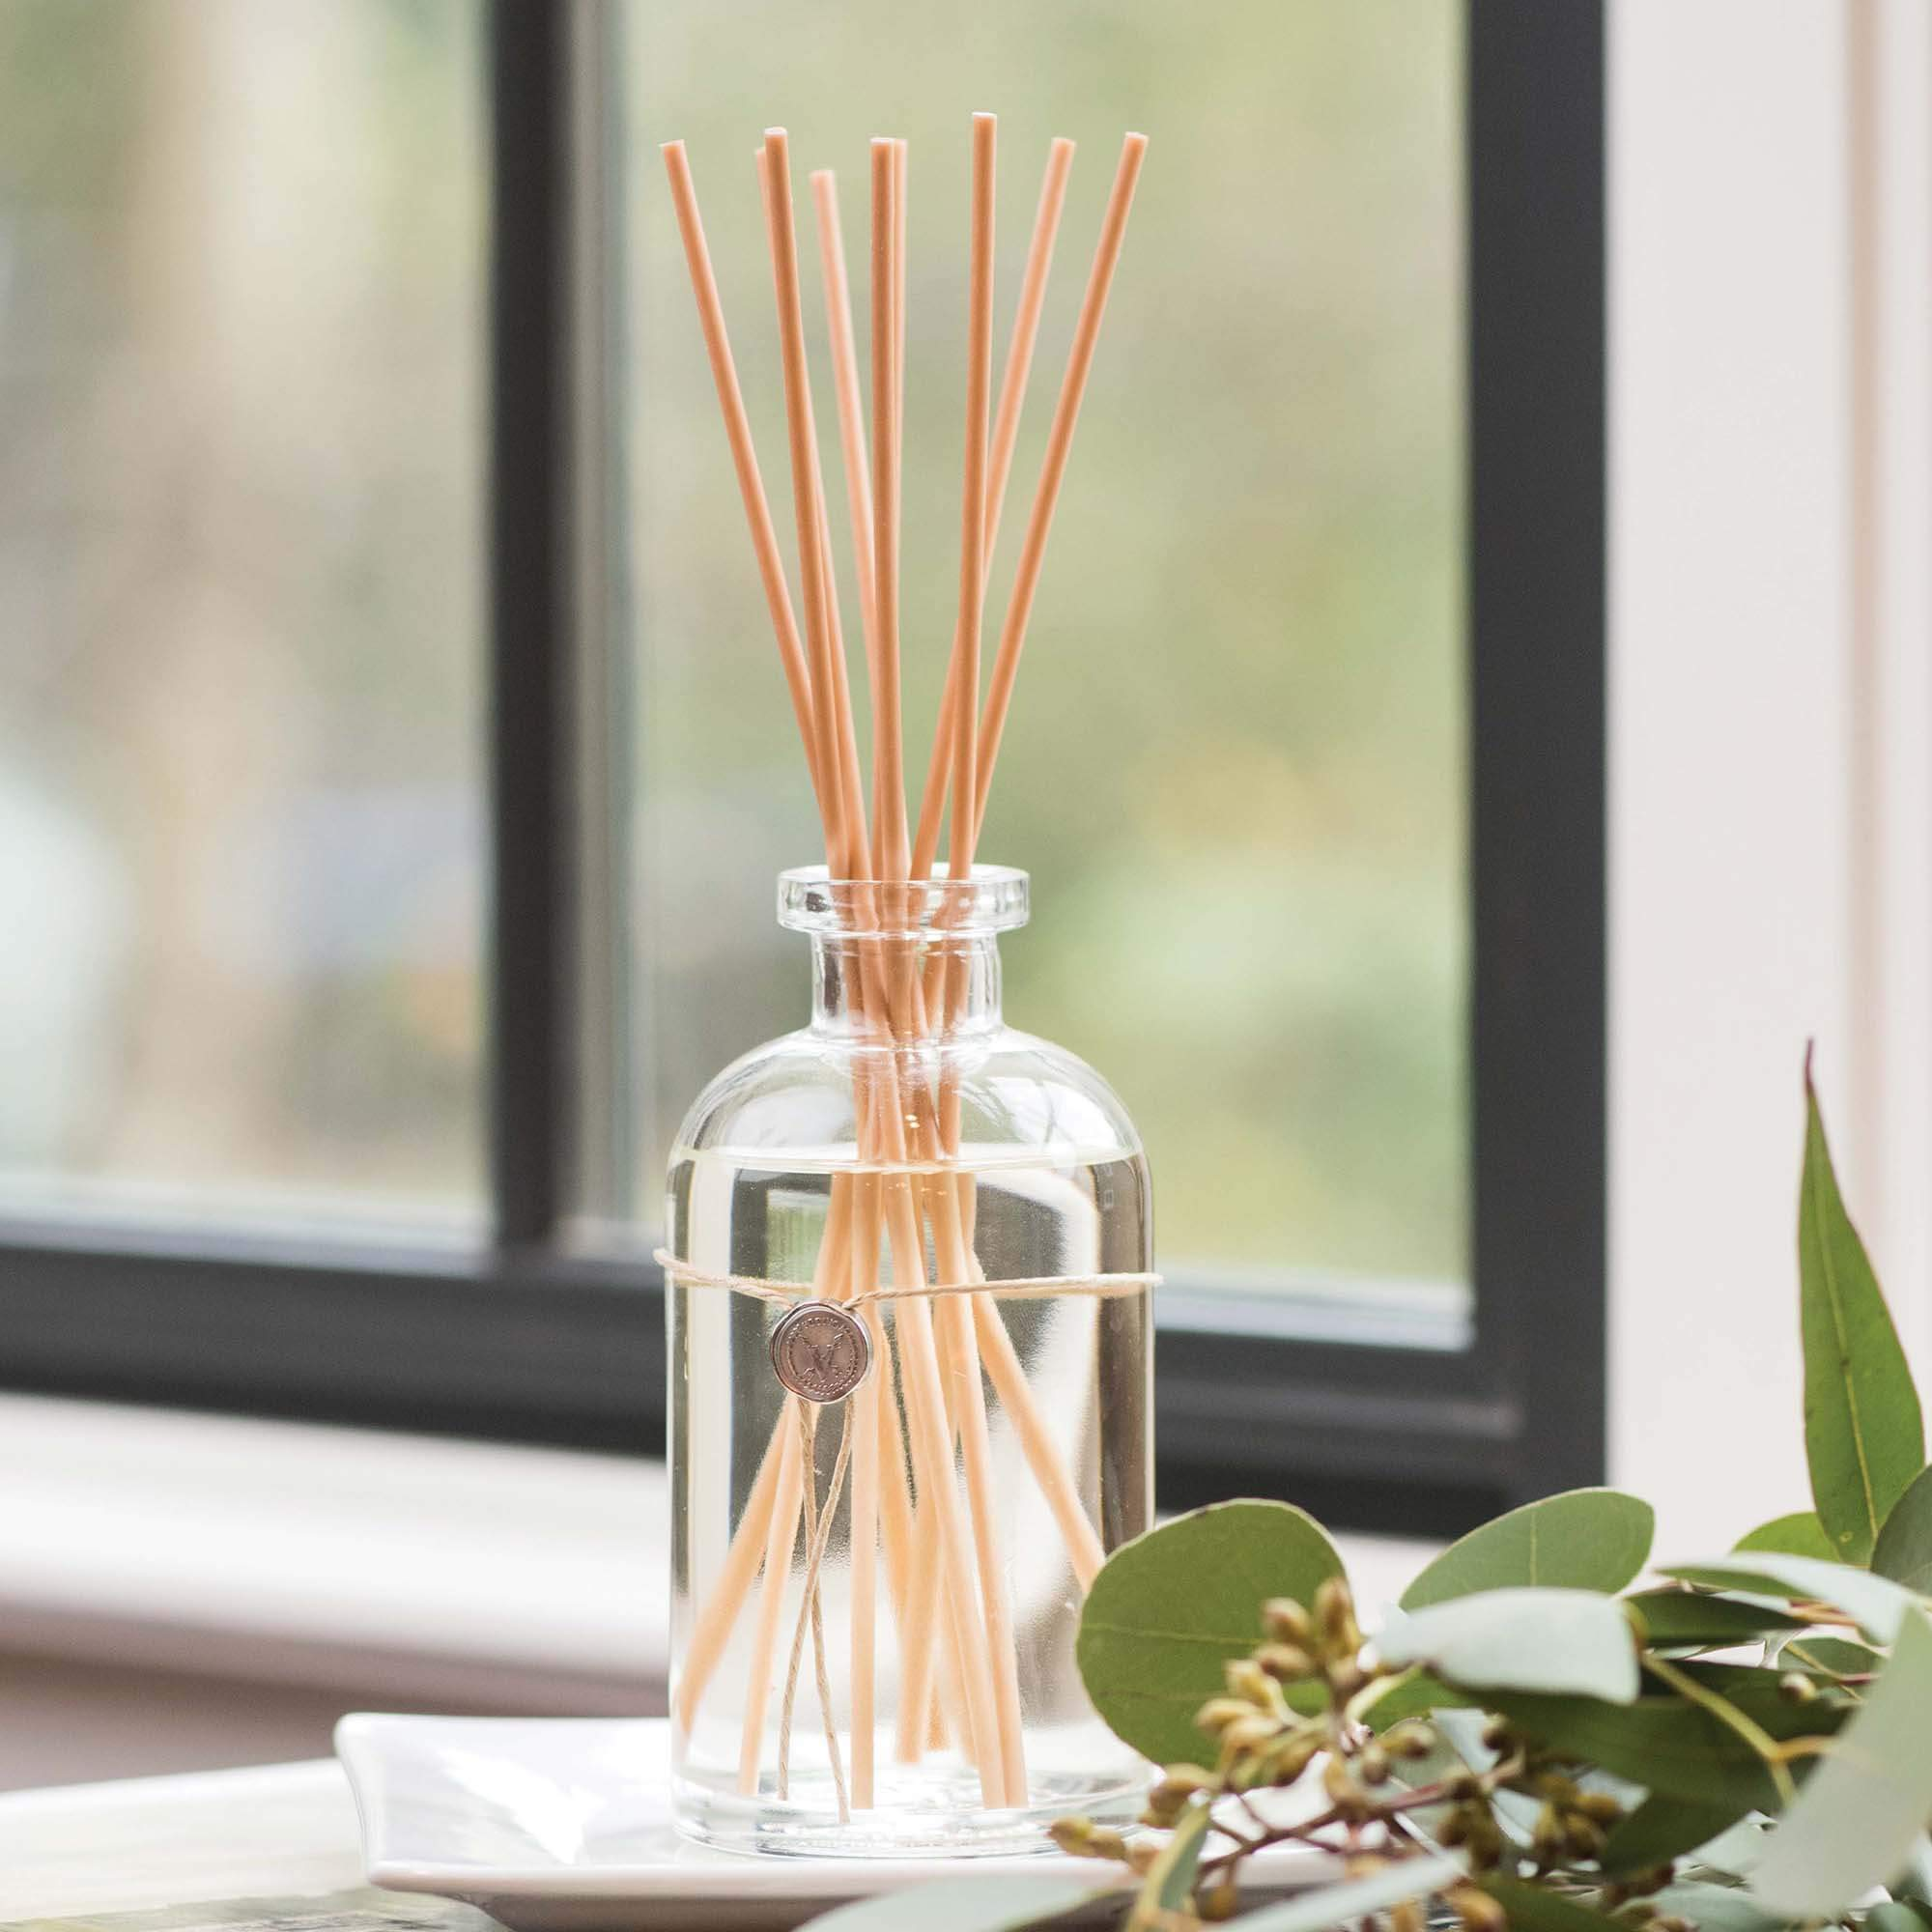 Votivo Aromatic Reed Diffuser - Red Currant by Votivo (Image #8)